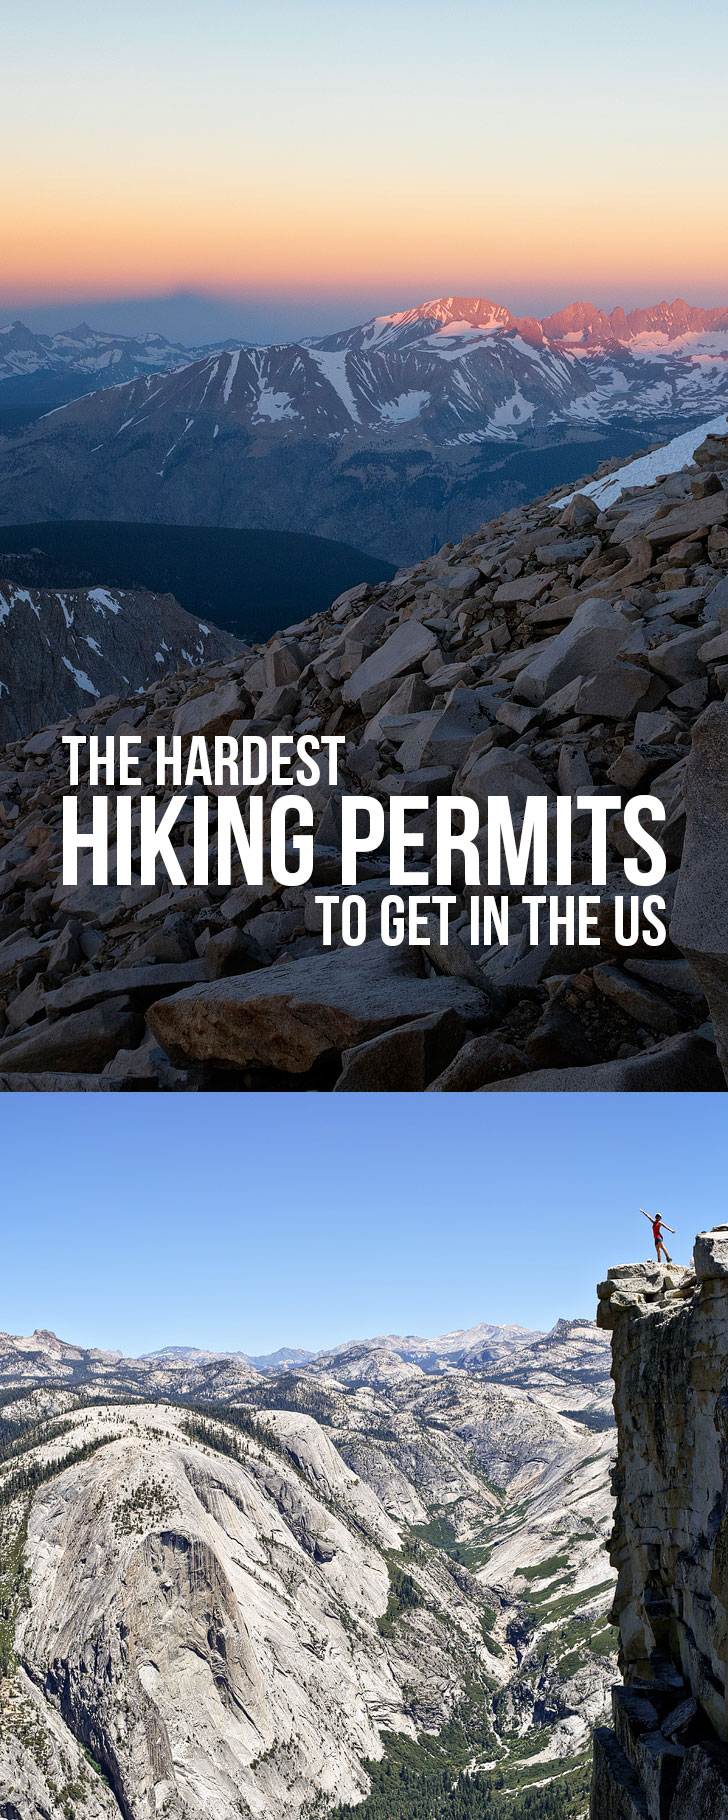 The Hardest Hiking Permits to Get in the US - National Park Backcountry Permits with the Most Competitive Lotteries // localadventurer.com